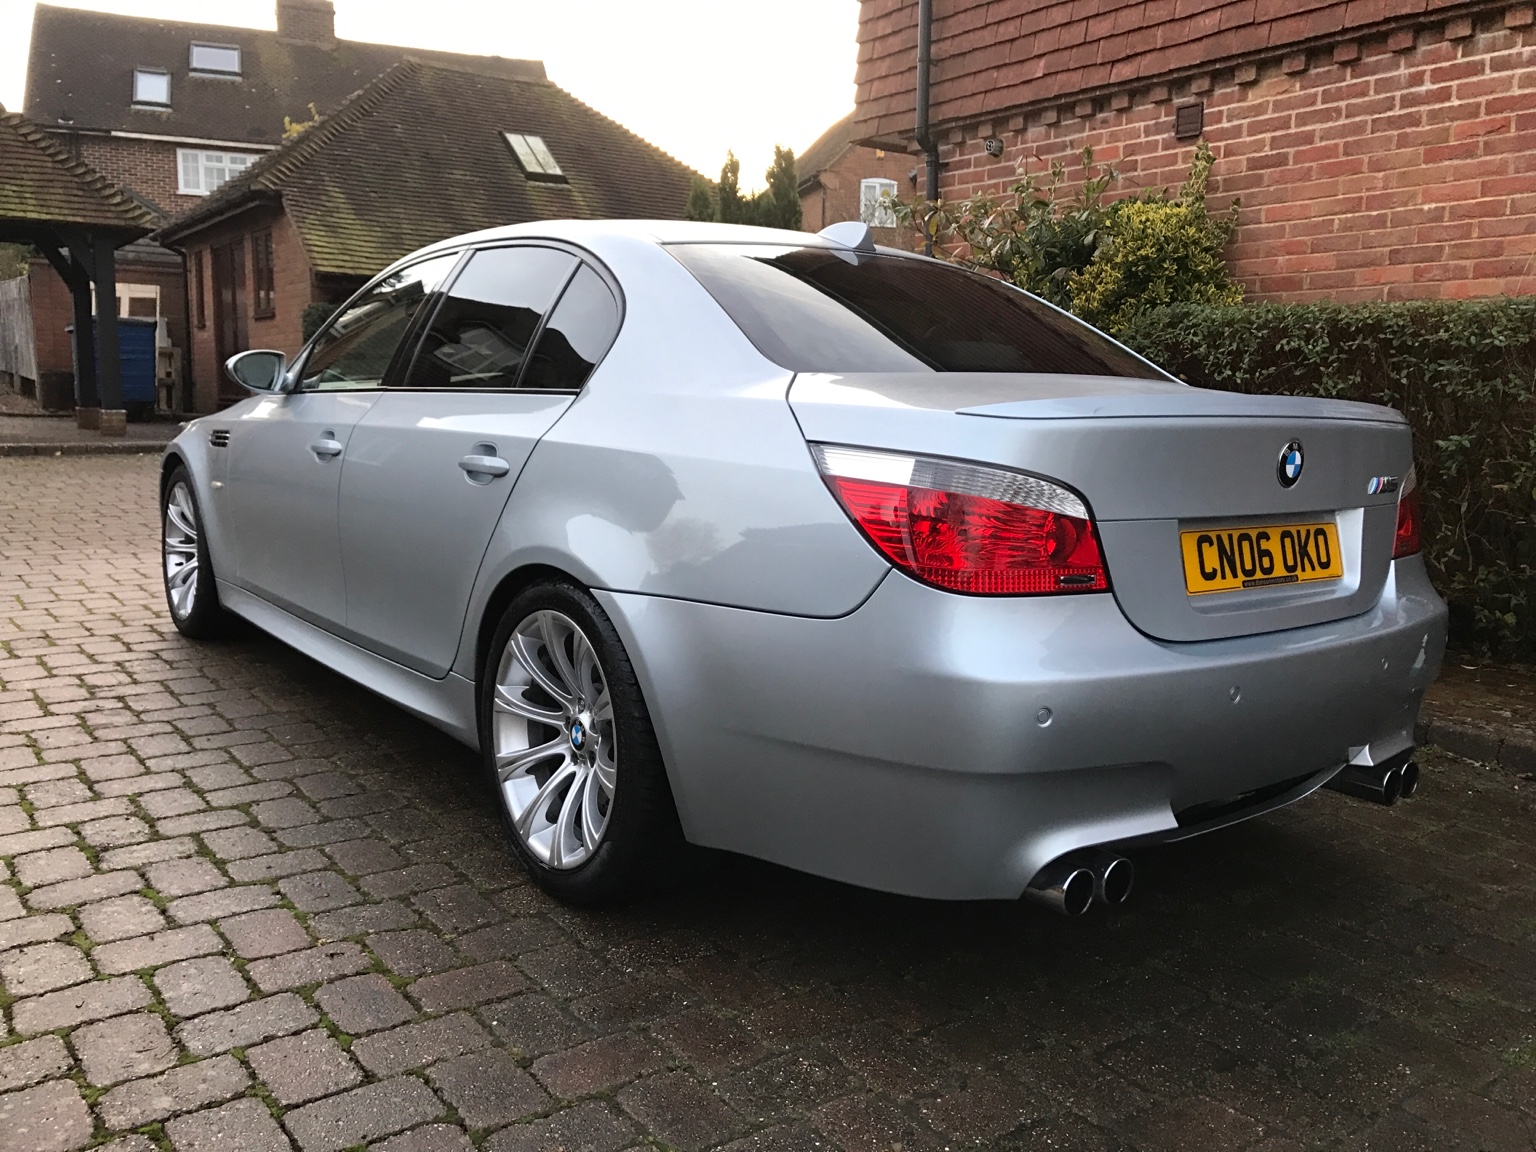 New Here With A Bmw E60 M5 Detailing World